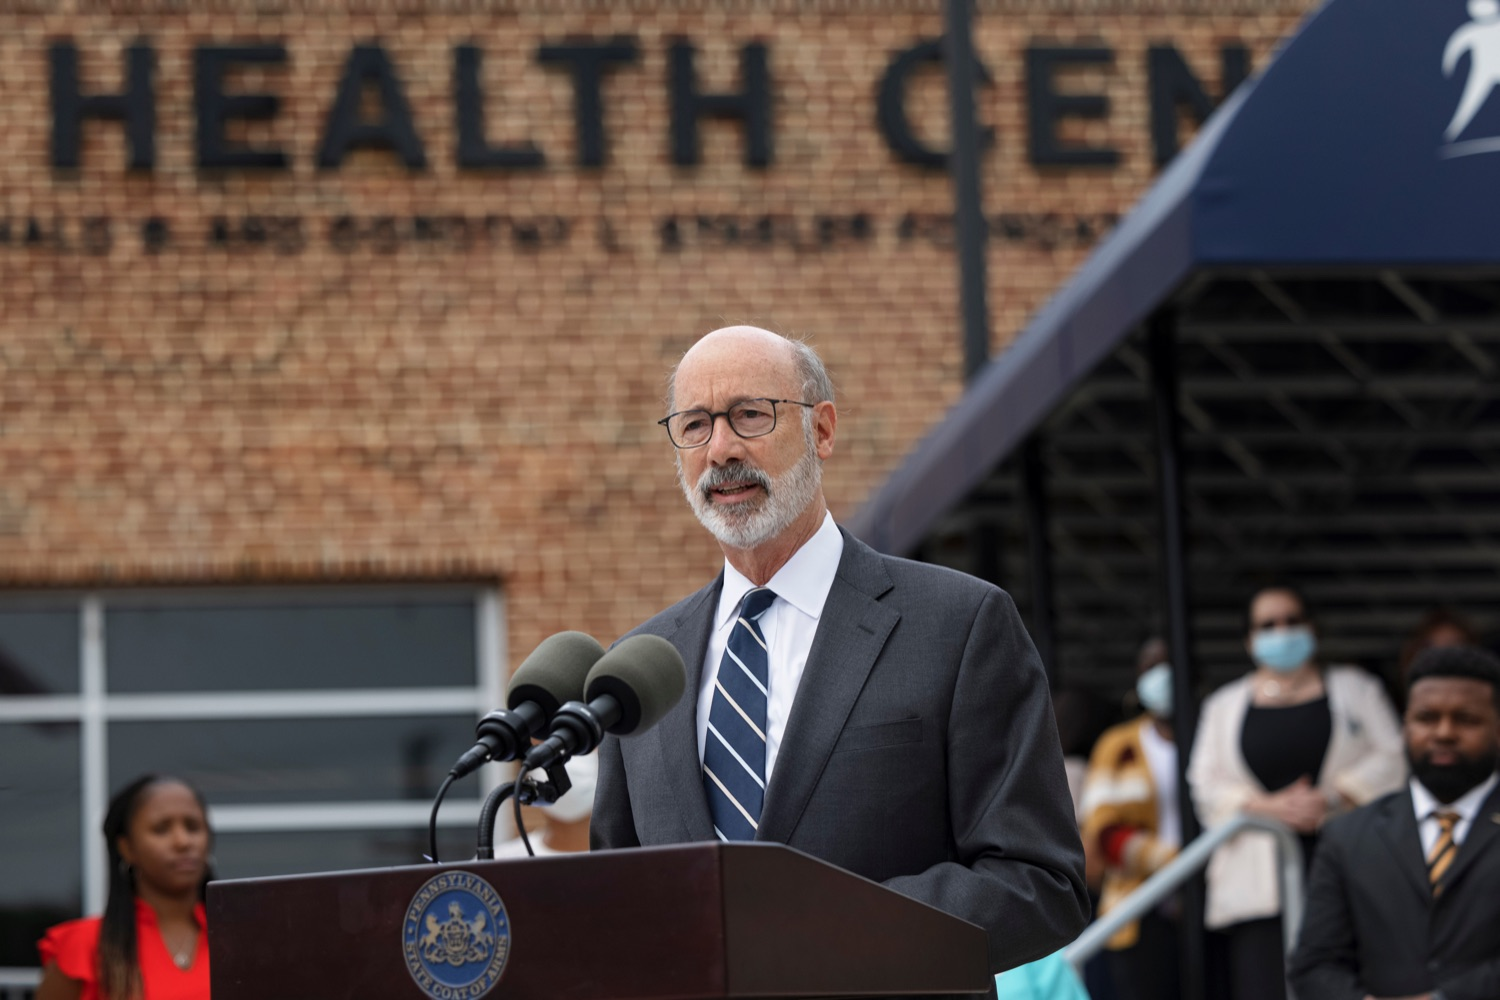 """<a href=""""https://filesource.wostreaming.net/commonwealthofpa/photo/20119_GOV_Vaccines_NK_012.jpg"""" target=""""_blank"""">⇣Download Photo<br></a>PA Governor Tom Wolf speaks during a press conference, which encouraged eligible Pennsylvanians who are not yet vaccinated to take advantage of their upcoming community COVID-19 vaccine clinic in partnership with the Zeta Theta Lambda Chapter of Alpha Phi Alpha fraternity, outside Hamilton Health Center in Harrisburg on Wednesday, October 6, 2021. The clinic will run on Saturday, October 9, COVID-19 vaccinations will be offered from 10am  2pm at Hamilton Health Center, 100 S. 17th St., Harrisburg, PA 17104."""